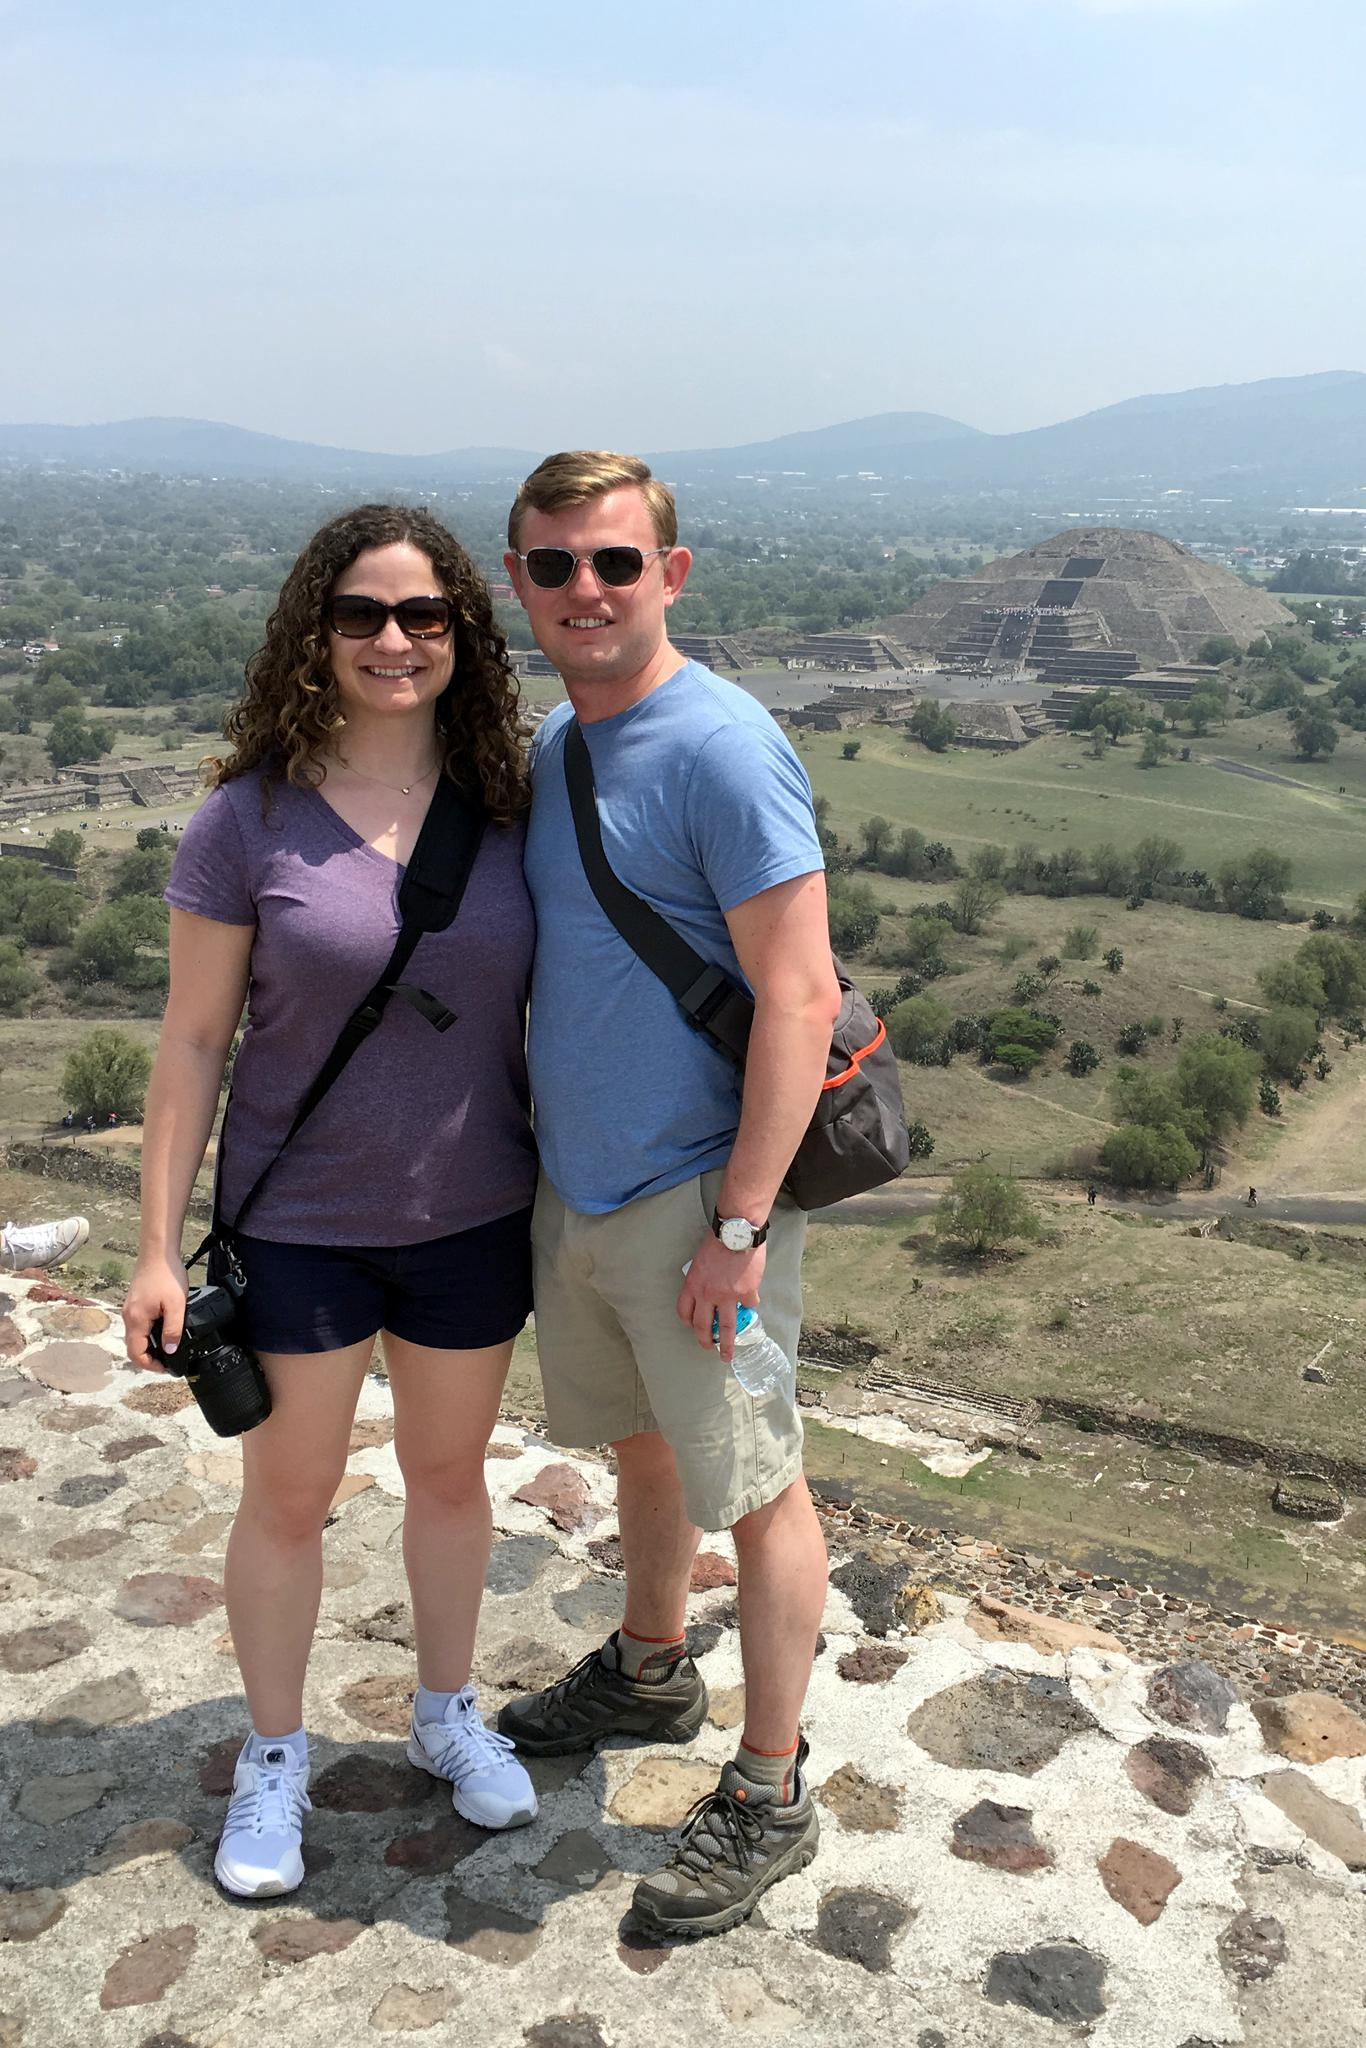 On top of the Pyramid of the Sun